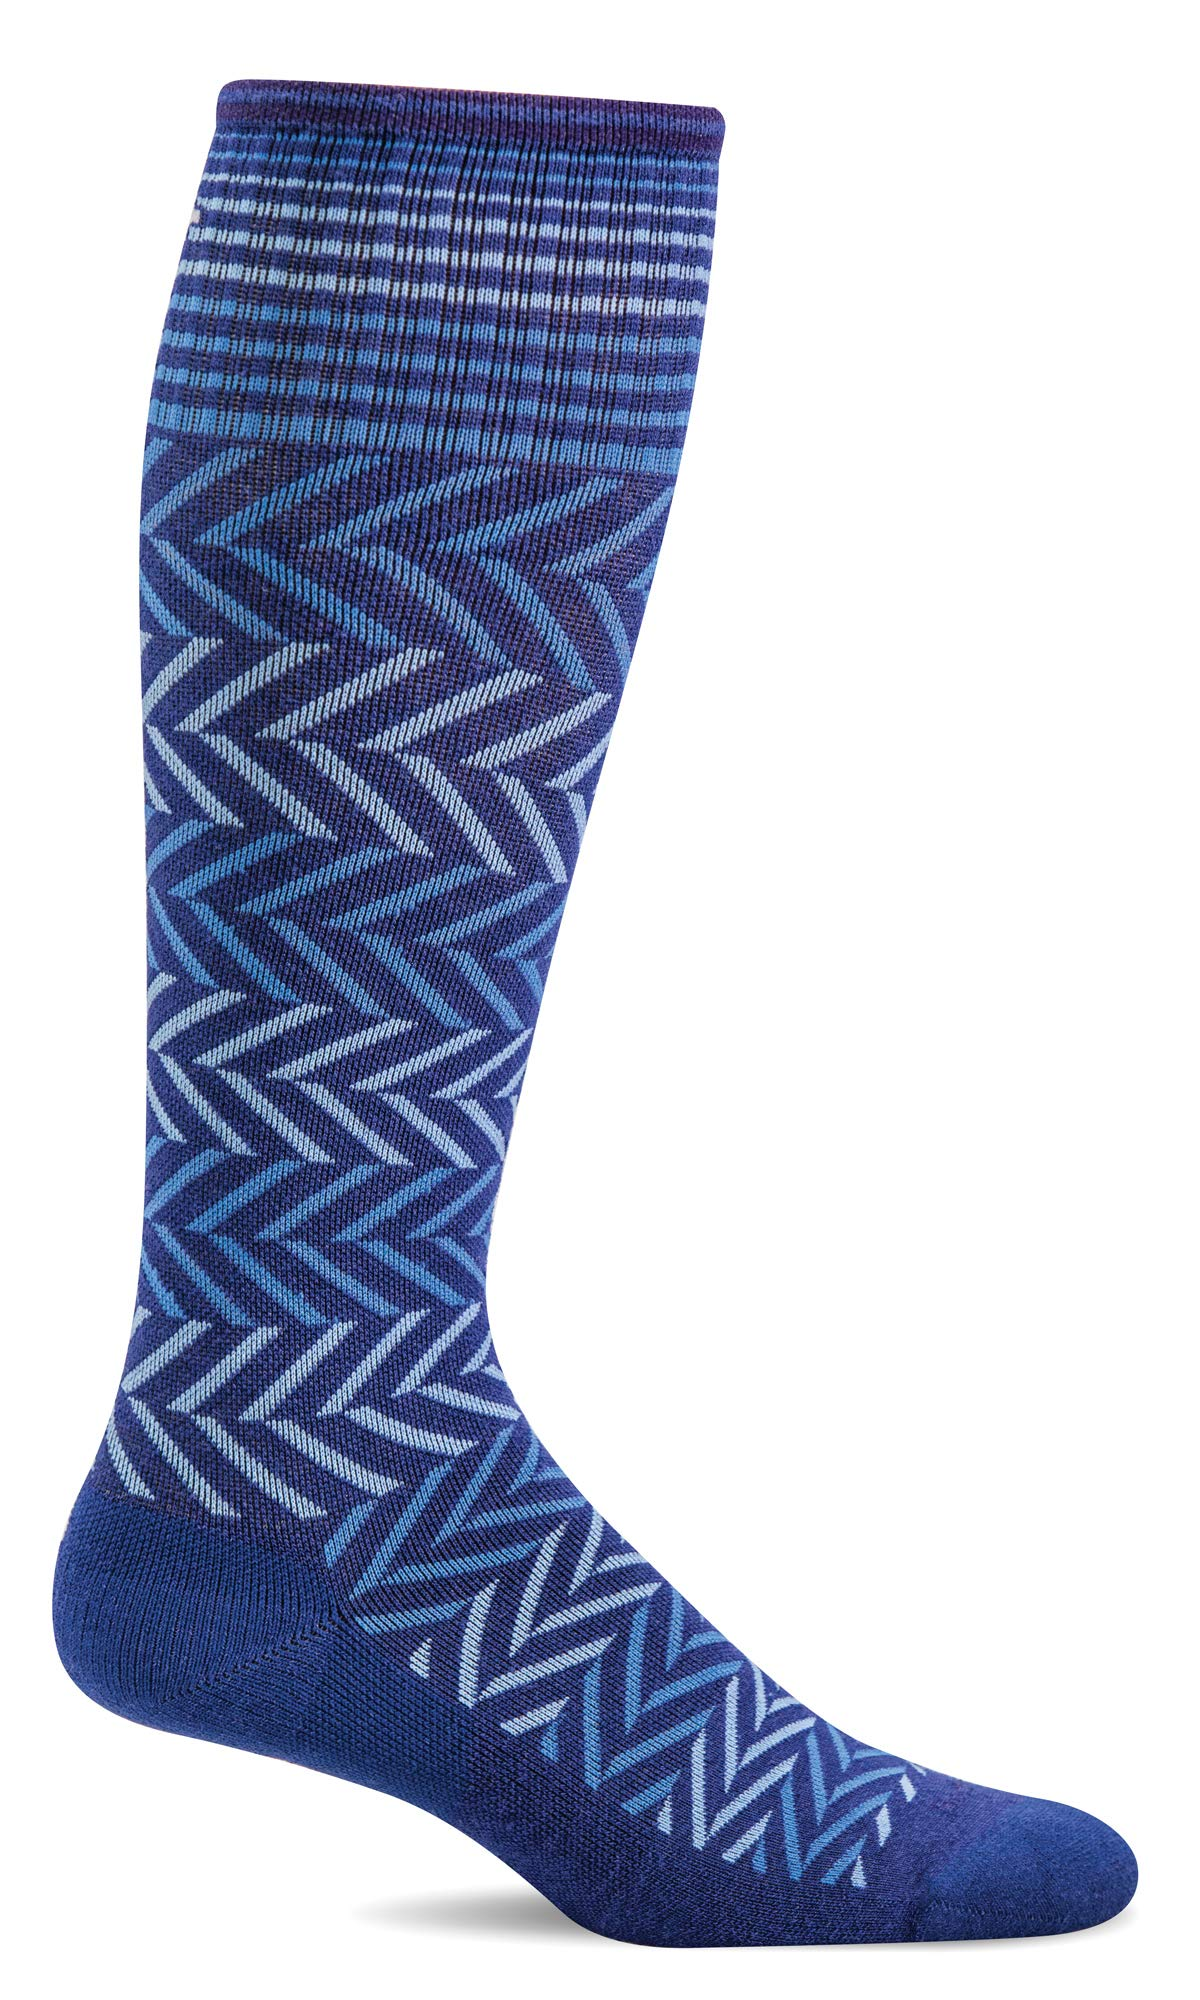 Sockwell Women's Chevron Moderate Graduated Compression Sock, Hyacinth - S/M by Sockwell